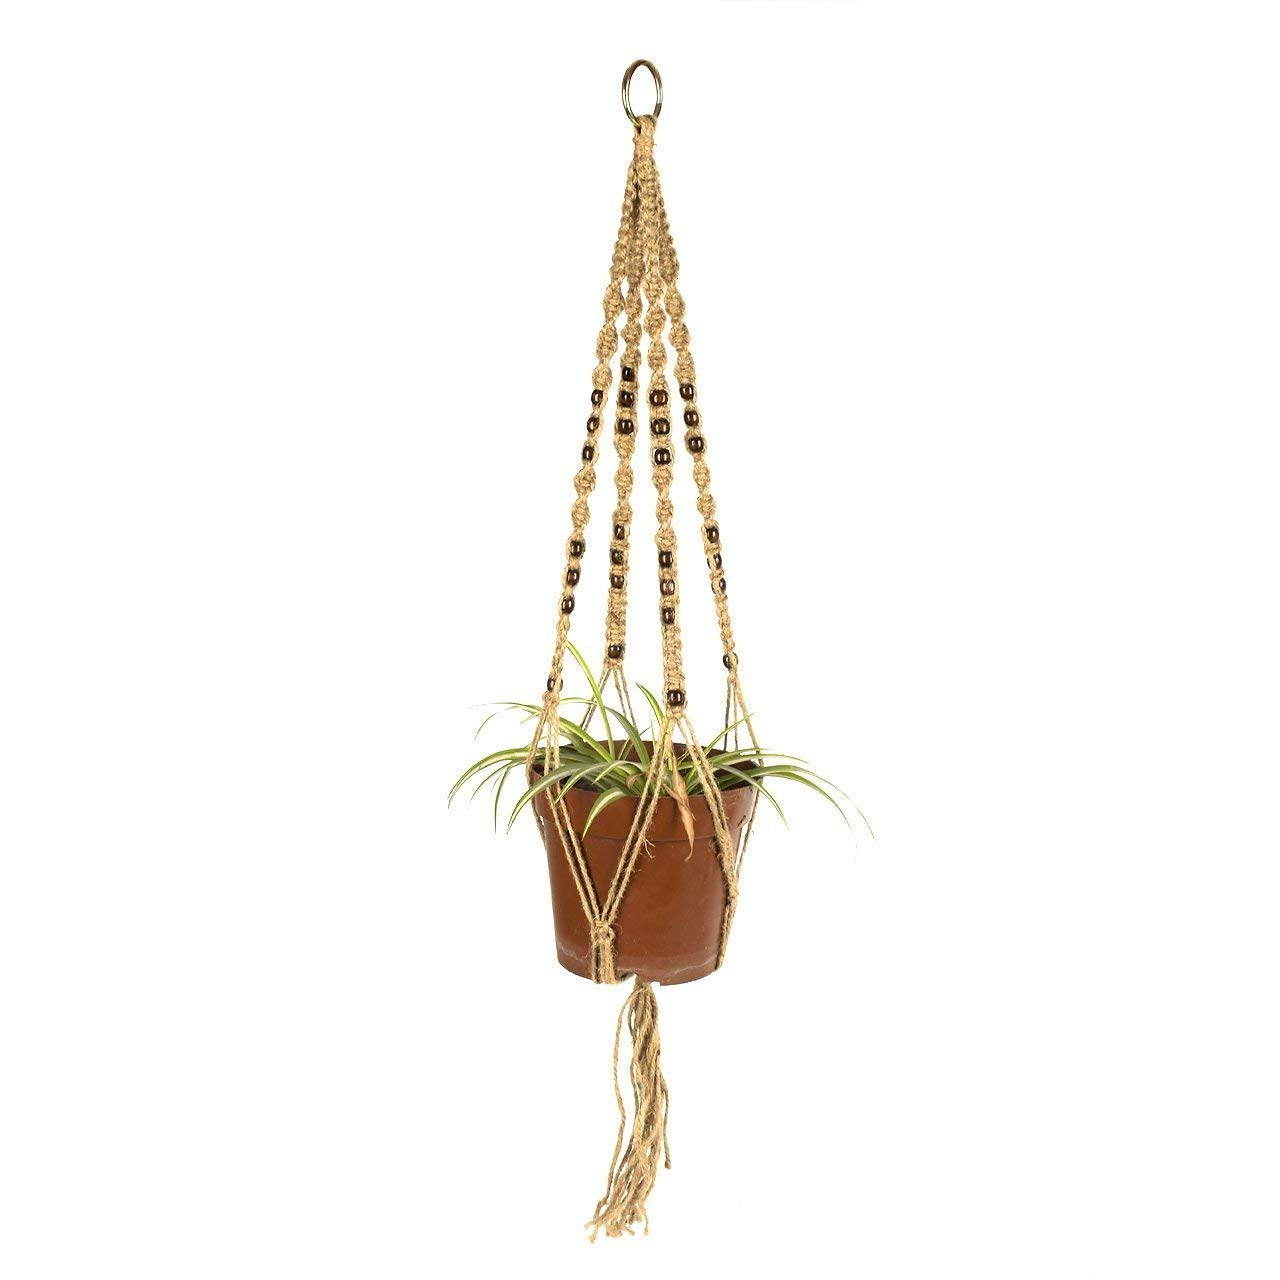 47 Inch Plant Hanger - Glamouric Decorative Pot Hanging Rope Macrame Jute with Beads 4 Legs Holding Plant Baskets Pots for Indoor Outdoor Ceiling Patio Deck Decoration